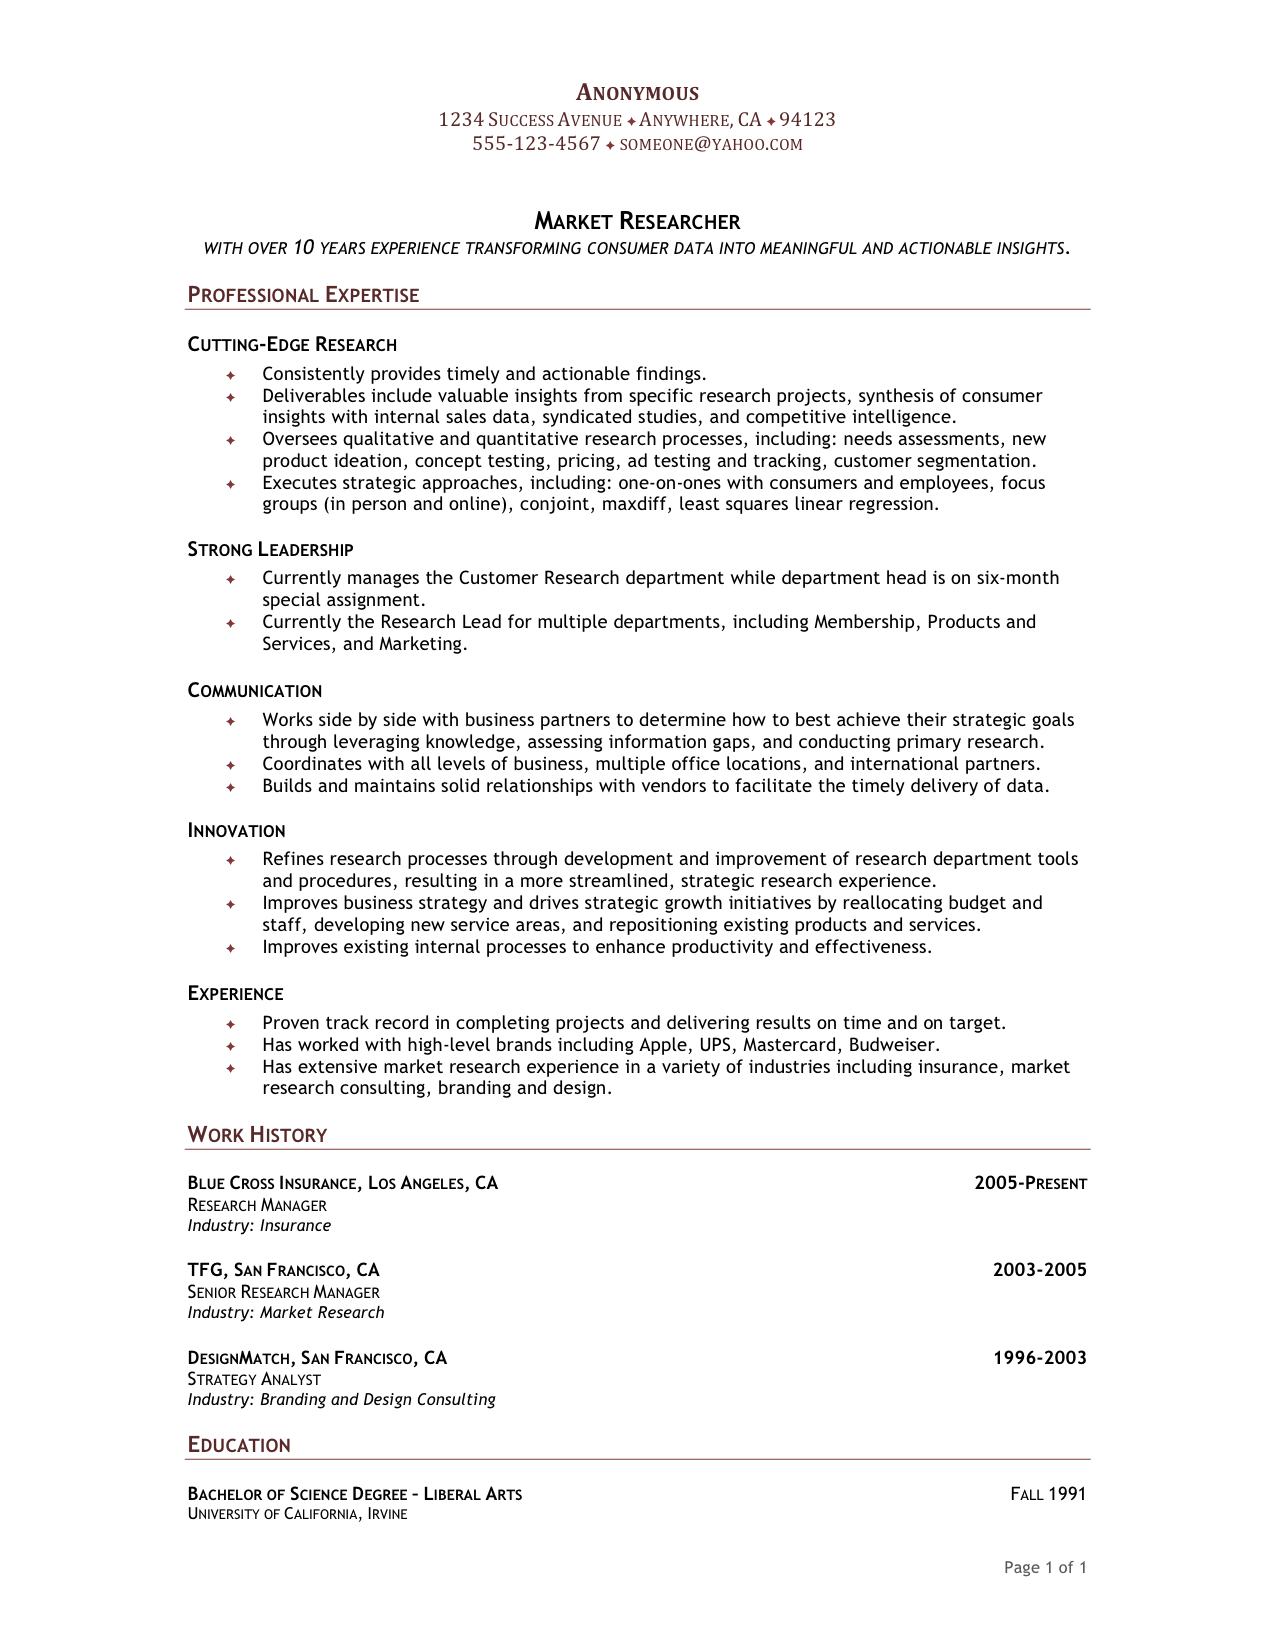 resume samples: chronological vs function resume formats ? robin ... - Chronological Resume Examples